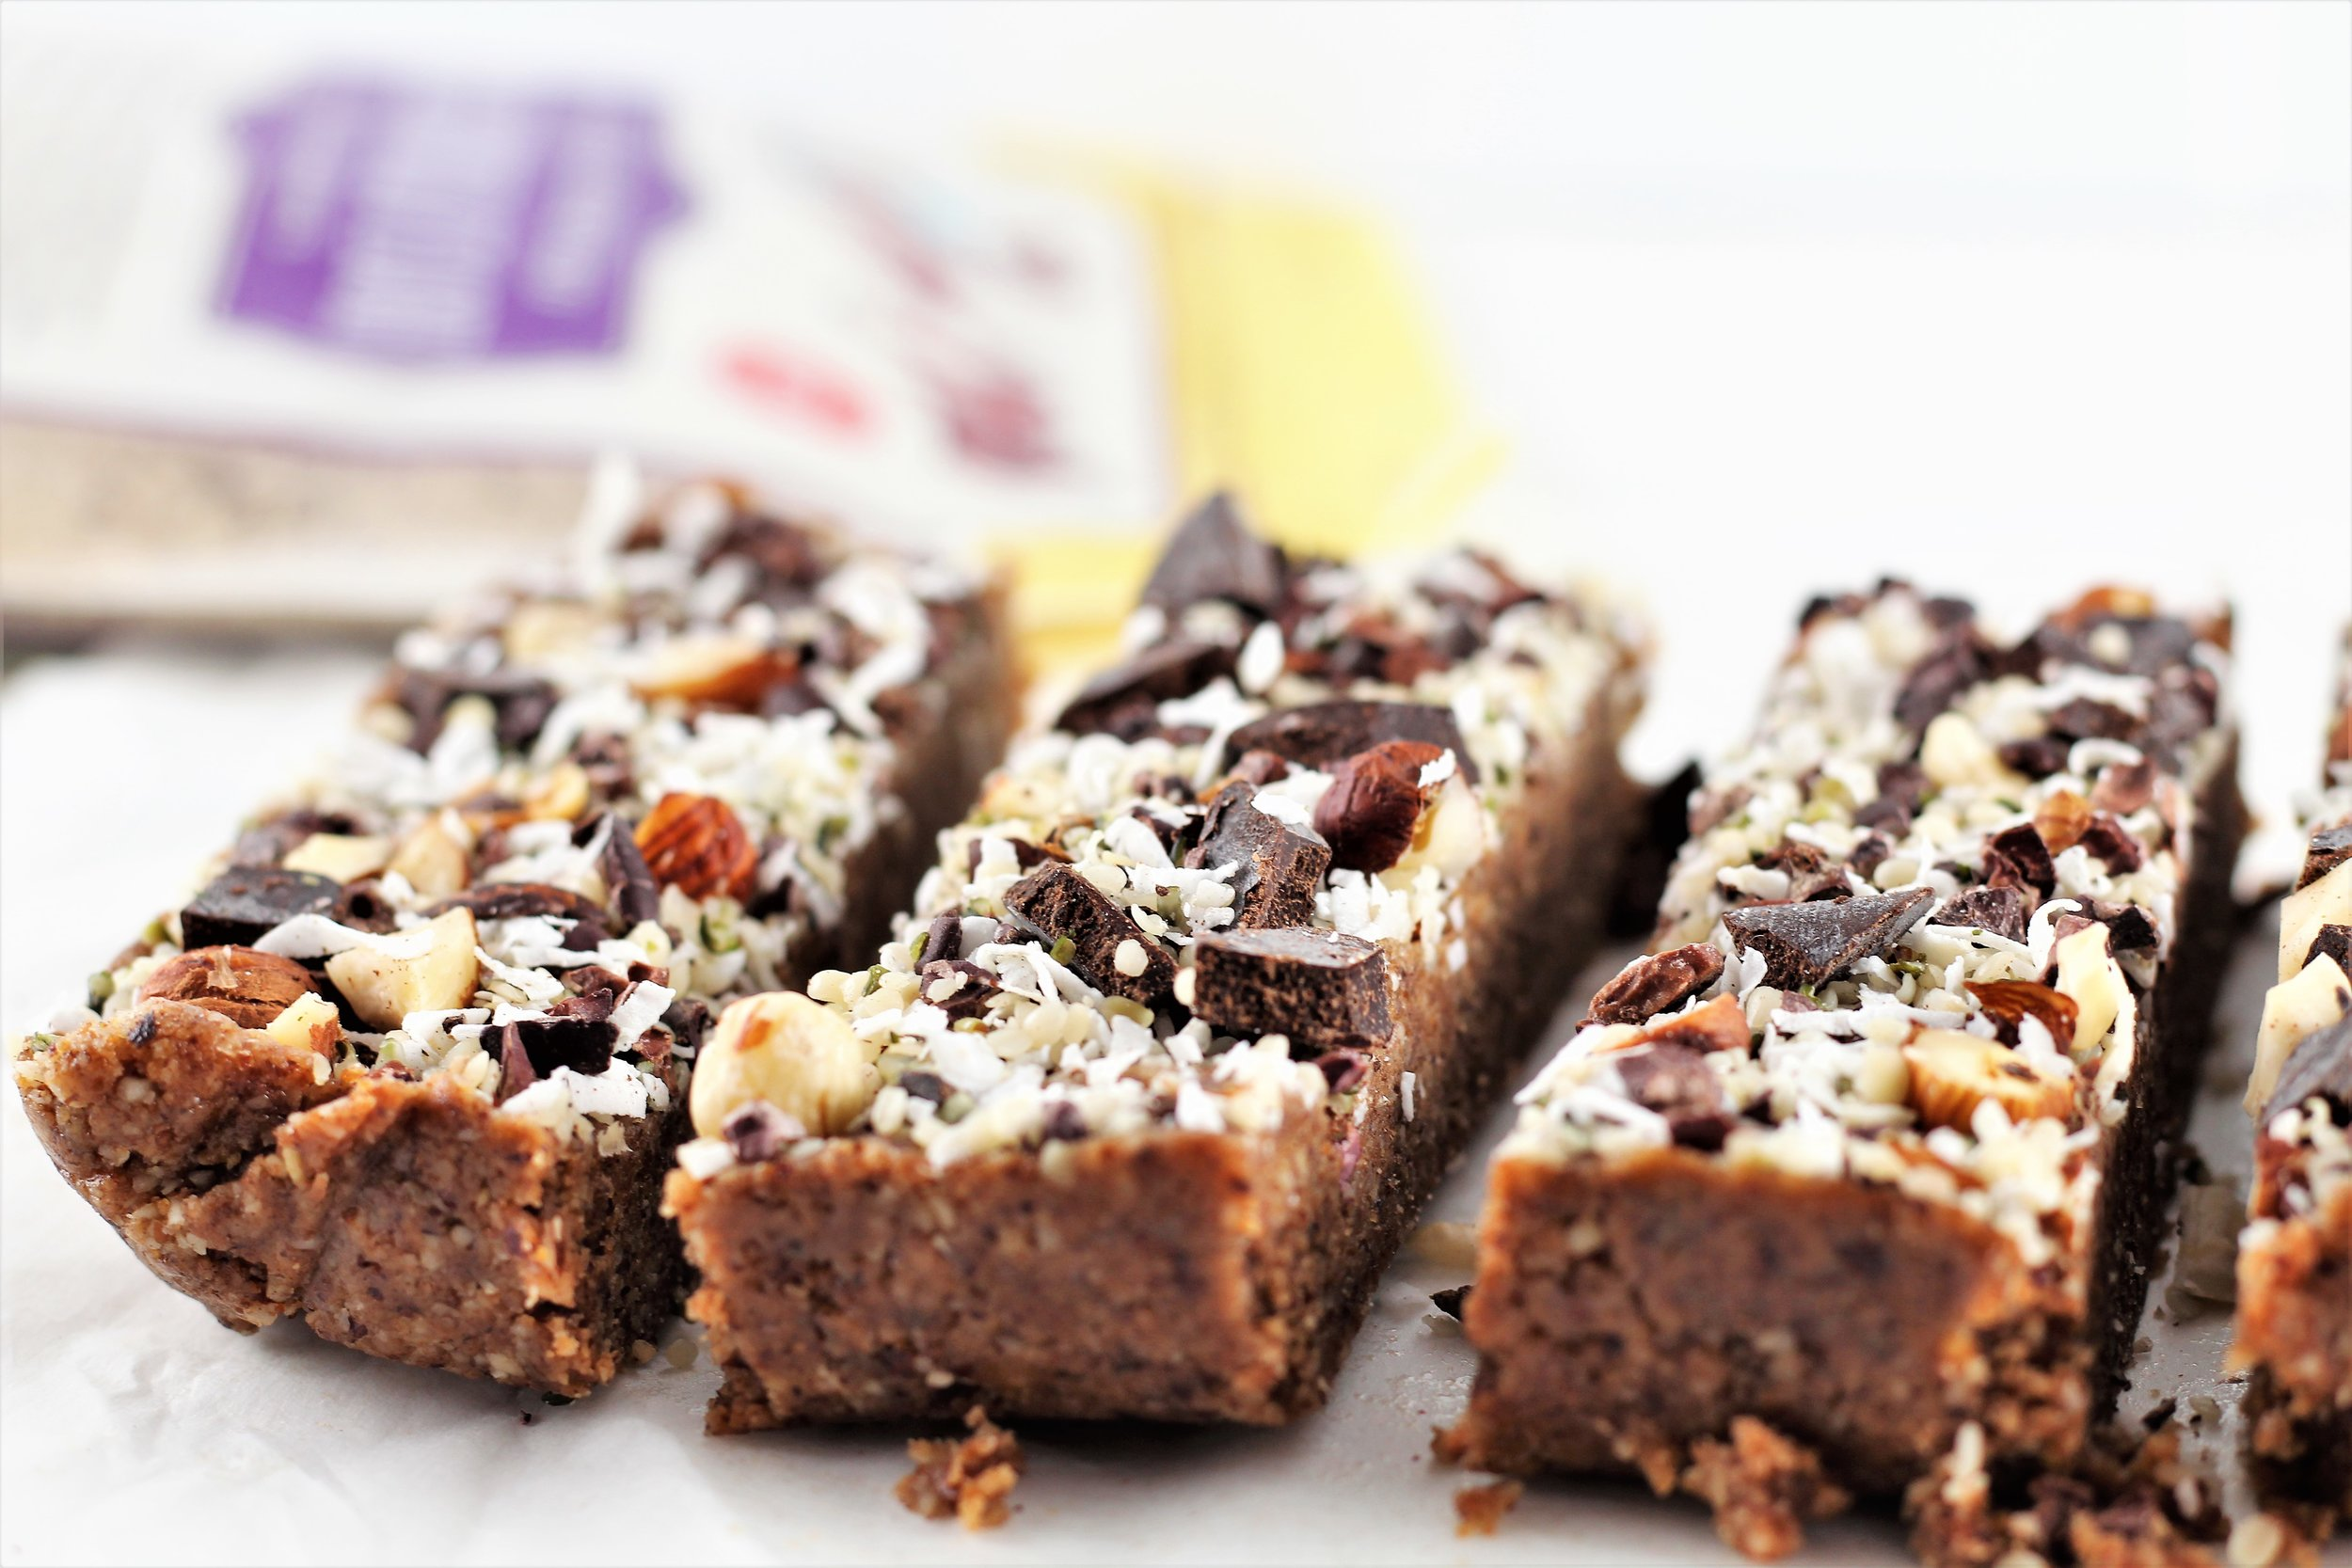 2. Grain Free Hazelnut Magic Bars  (10 most popular recipes of 2018)  This recipe is super simple to make, very easy to customize, and no-bake. Safe to say they don't ever last long in my house when I make them!